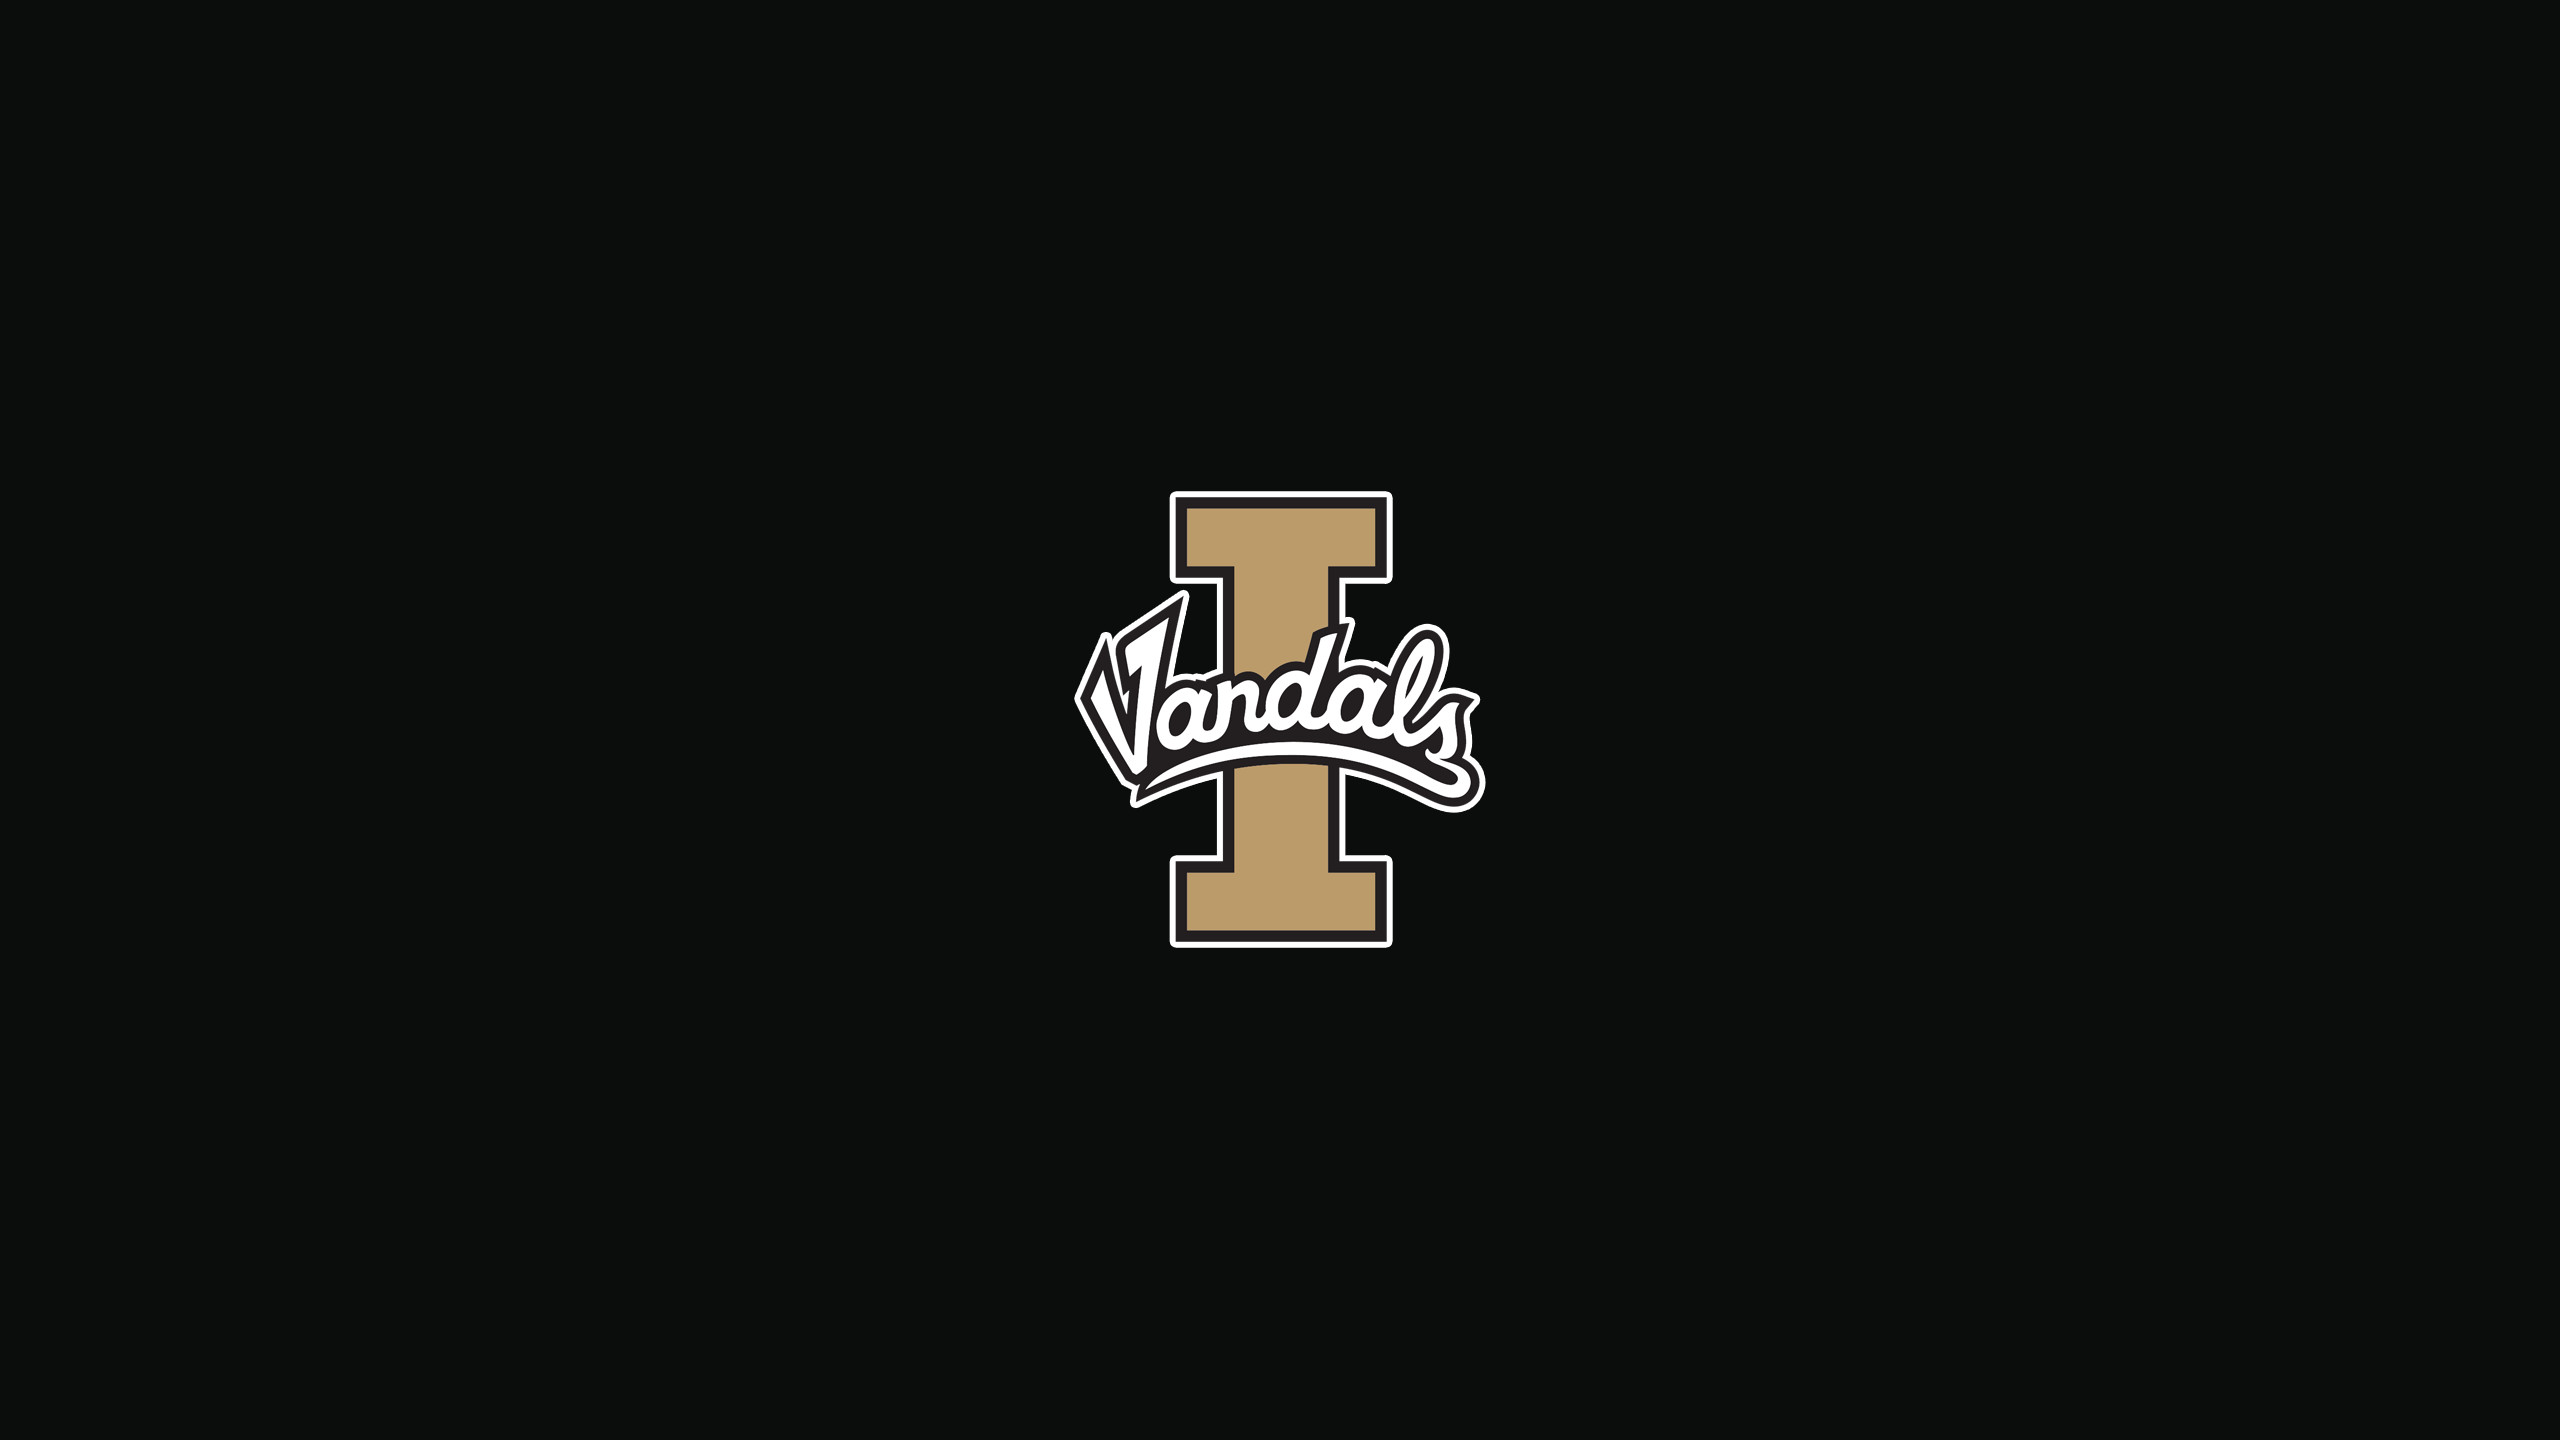 2560x1440 View attachment 671184 Could you please make me some Idaho Vandals wallpaper  using this logo. And add the word IDAHO to the top in old gold outlined in  ...